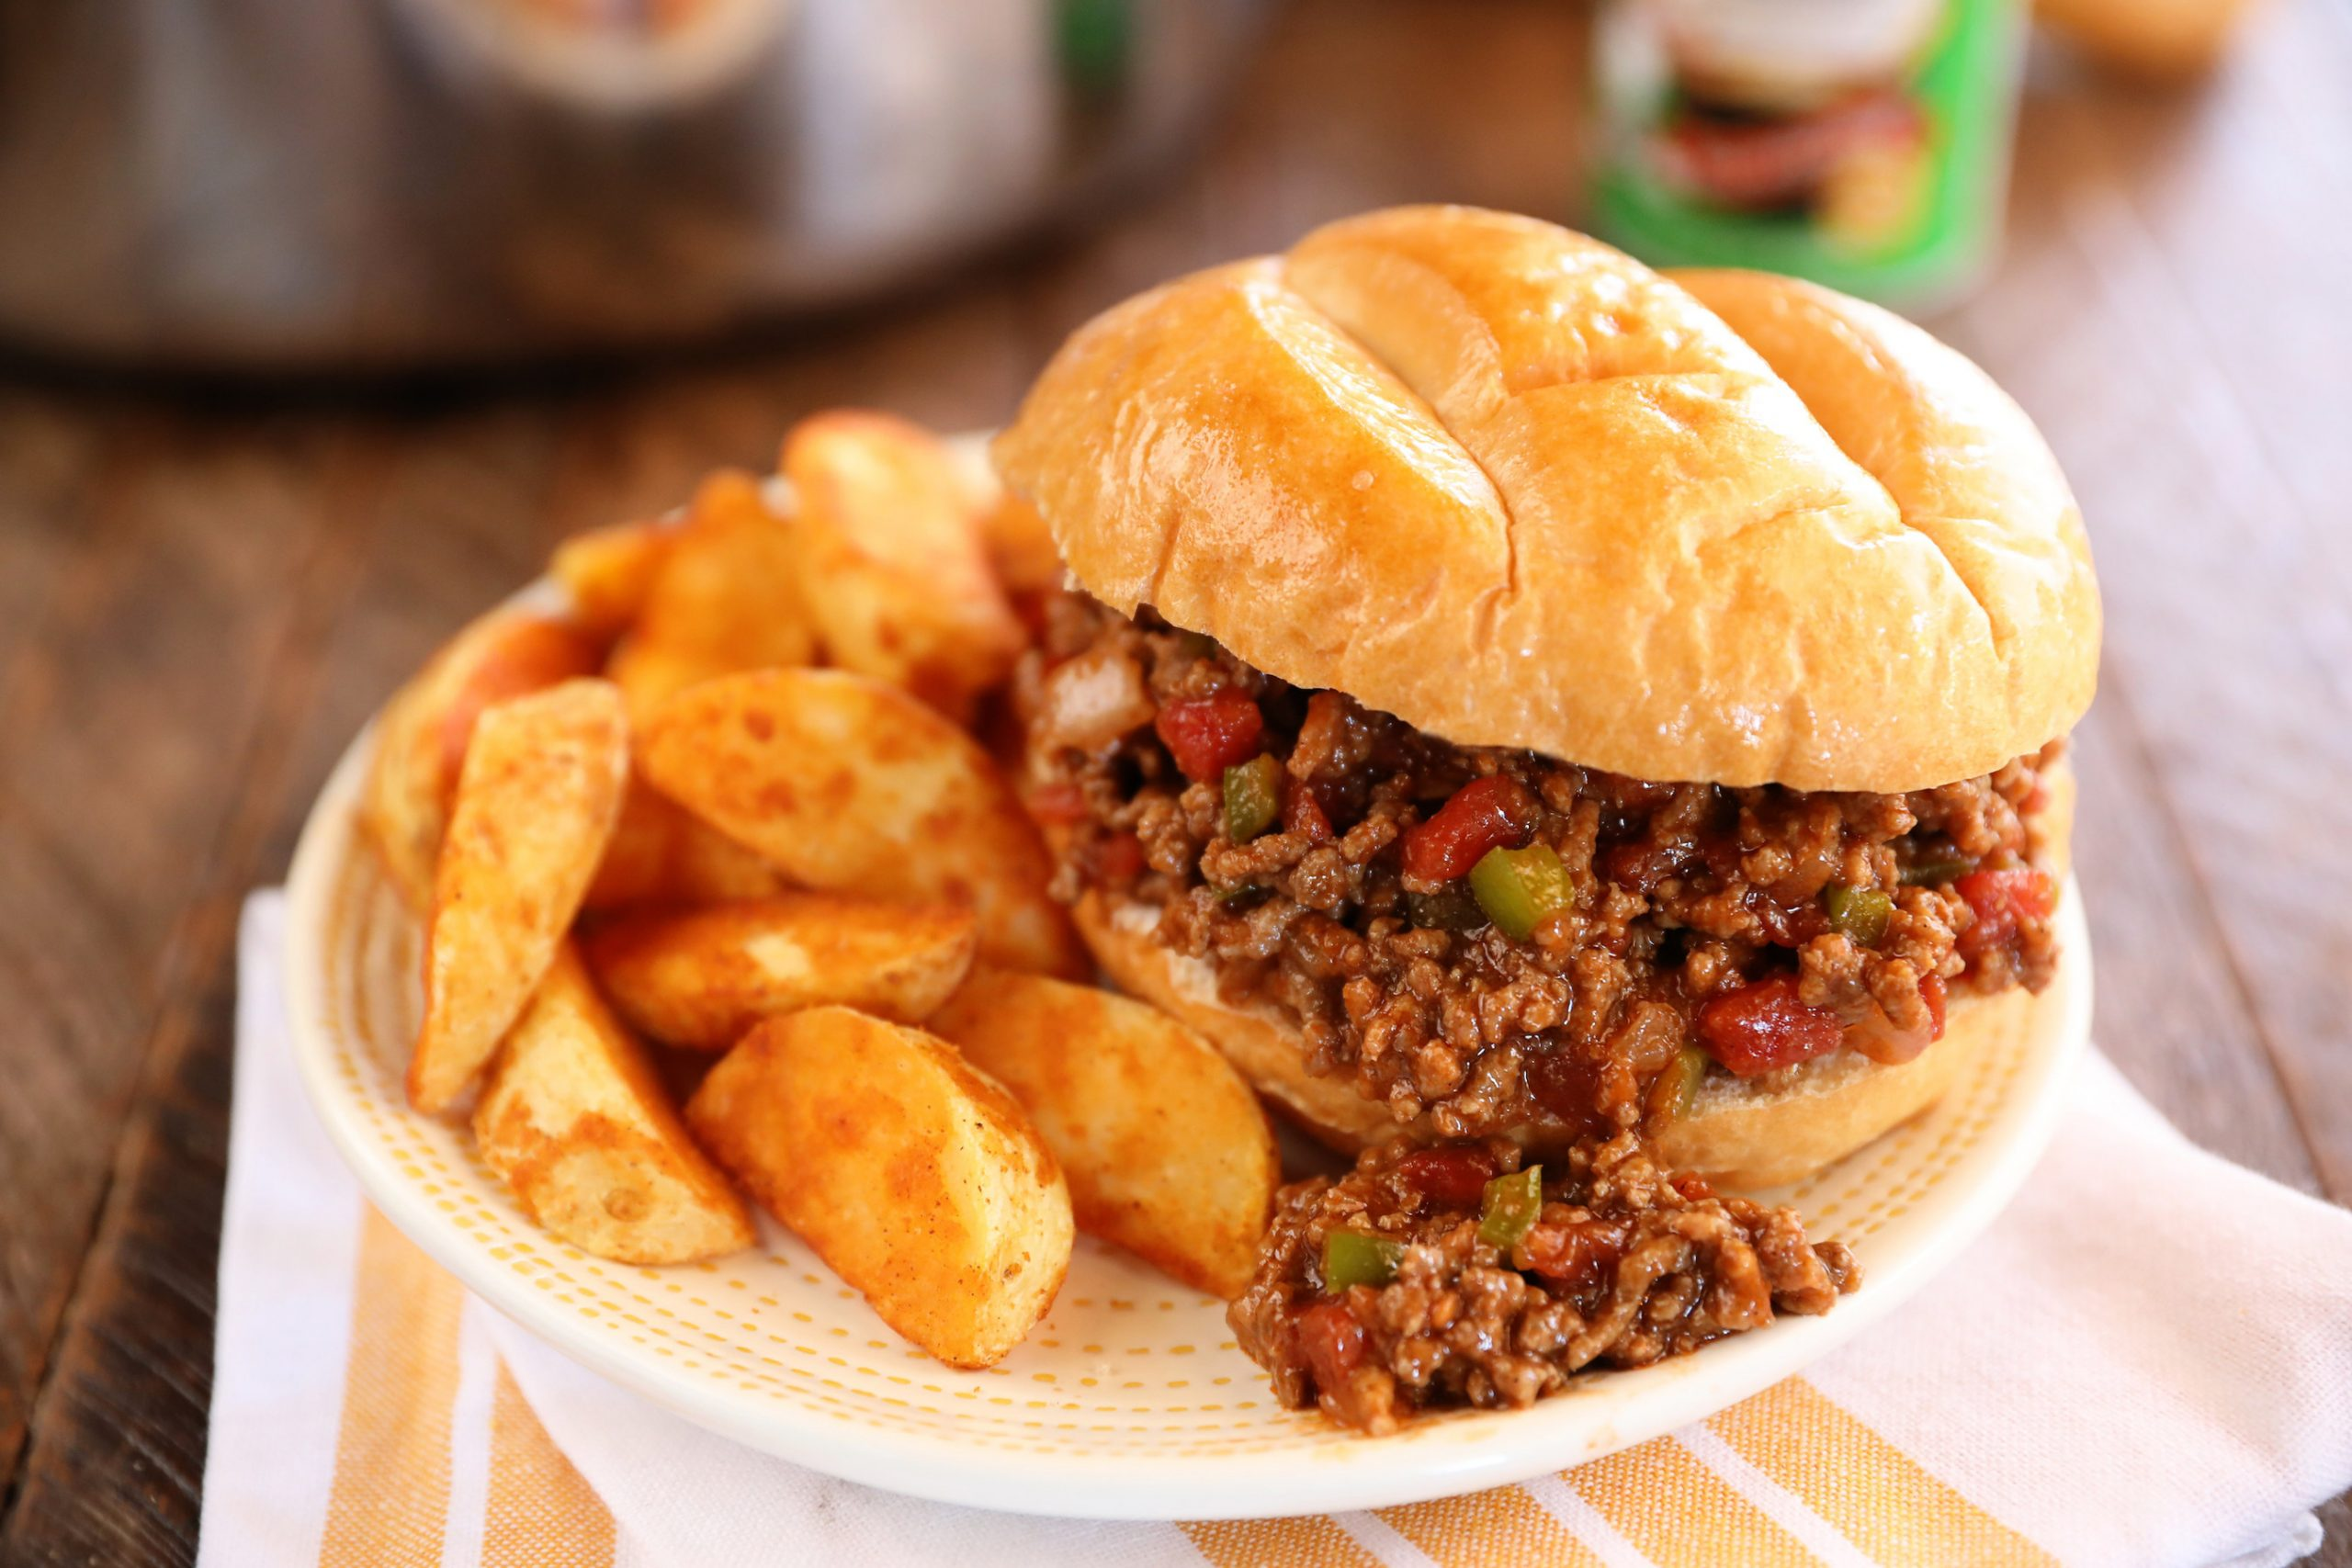 There is something about the savory and sweet flavors, and the mess, that we just love about sloppy joes, especially these from Southern Bite and made with Tony Chachere's.